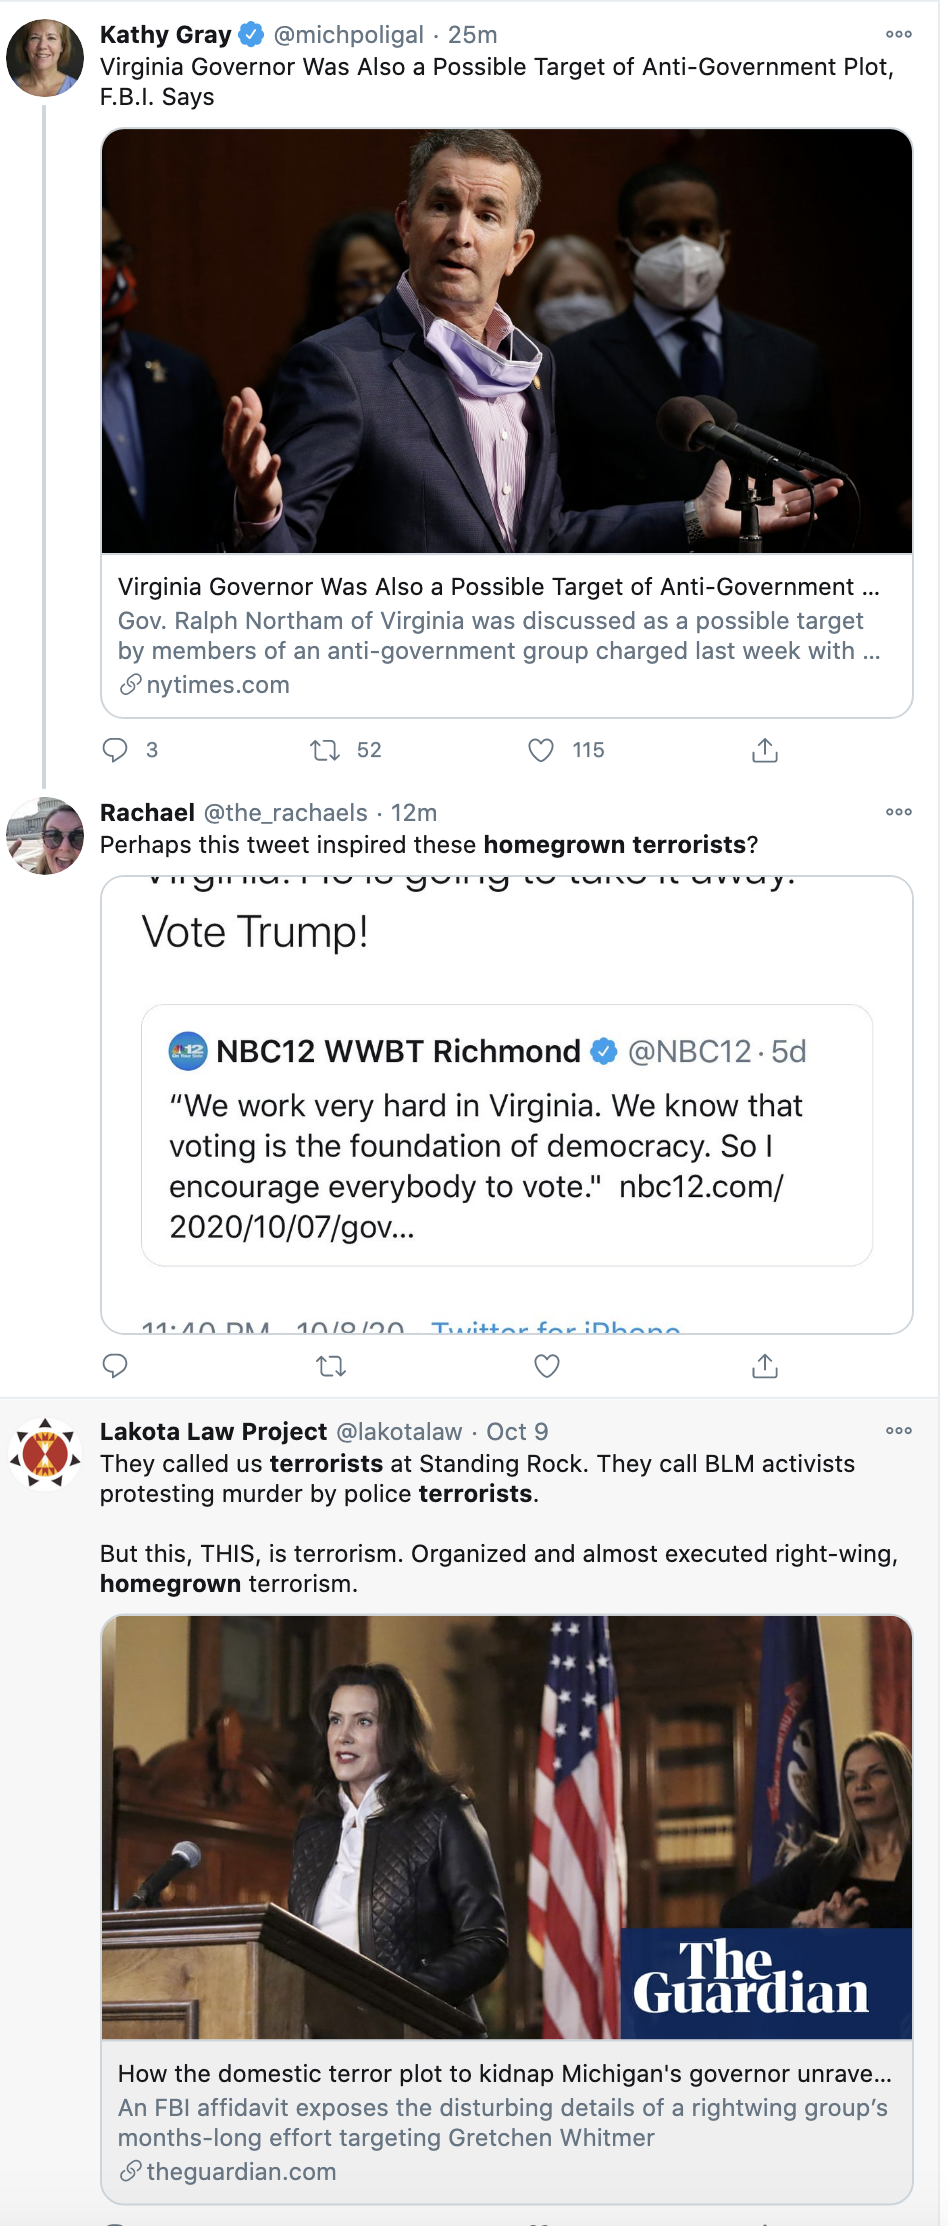 Screen-Shot-2020-10-13-at-11.57.12-AM FBI Reveals 2nd Plot To Kidnap, Try, & Hang Virginia Governor Alt-Right Featured Politics Terrorism Top Stories